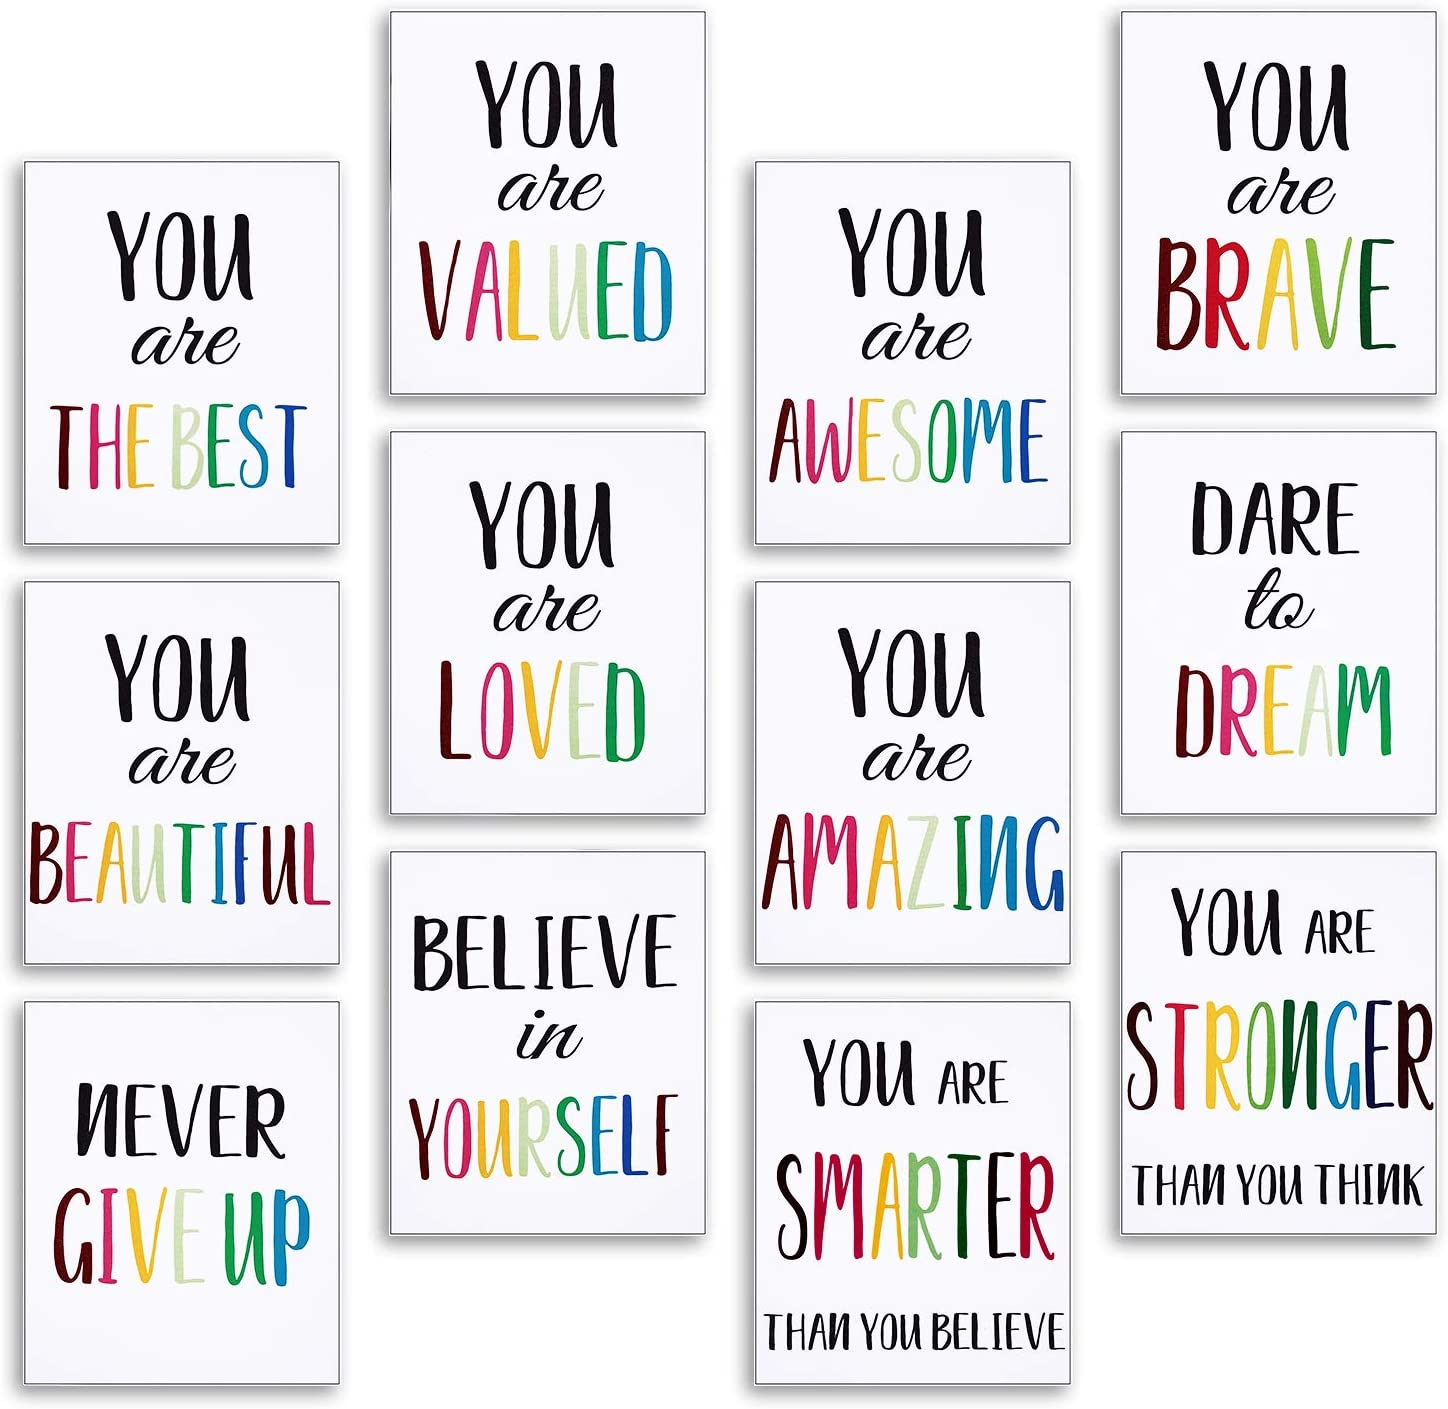 12 Pieces Inspirational Art Print Wall Poster Motivational Quote Watercolor Words Posters 8 x 10 Inch Unframed Canvas Saying Painting Posters for Kids Room Modern Decoration